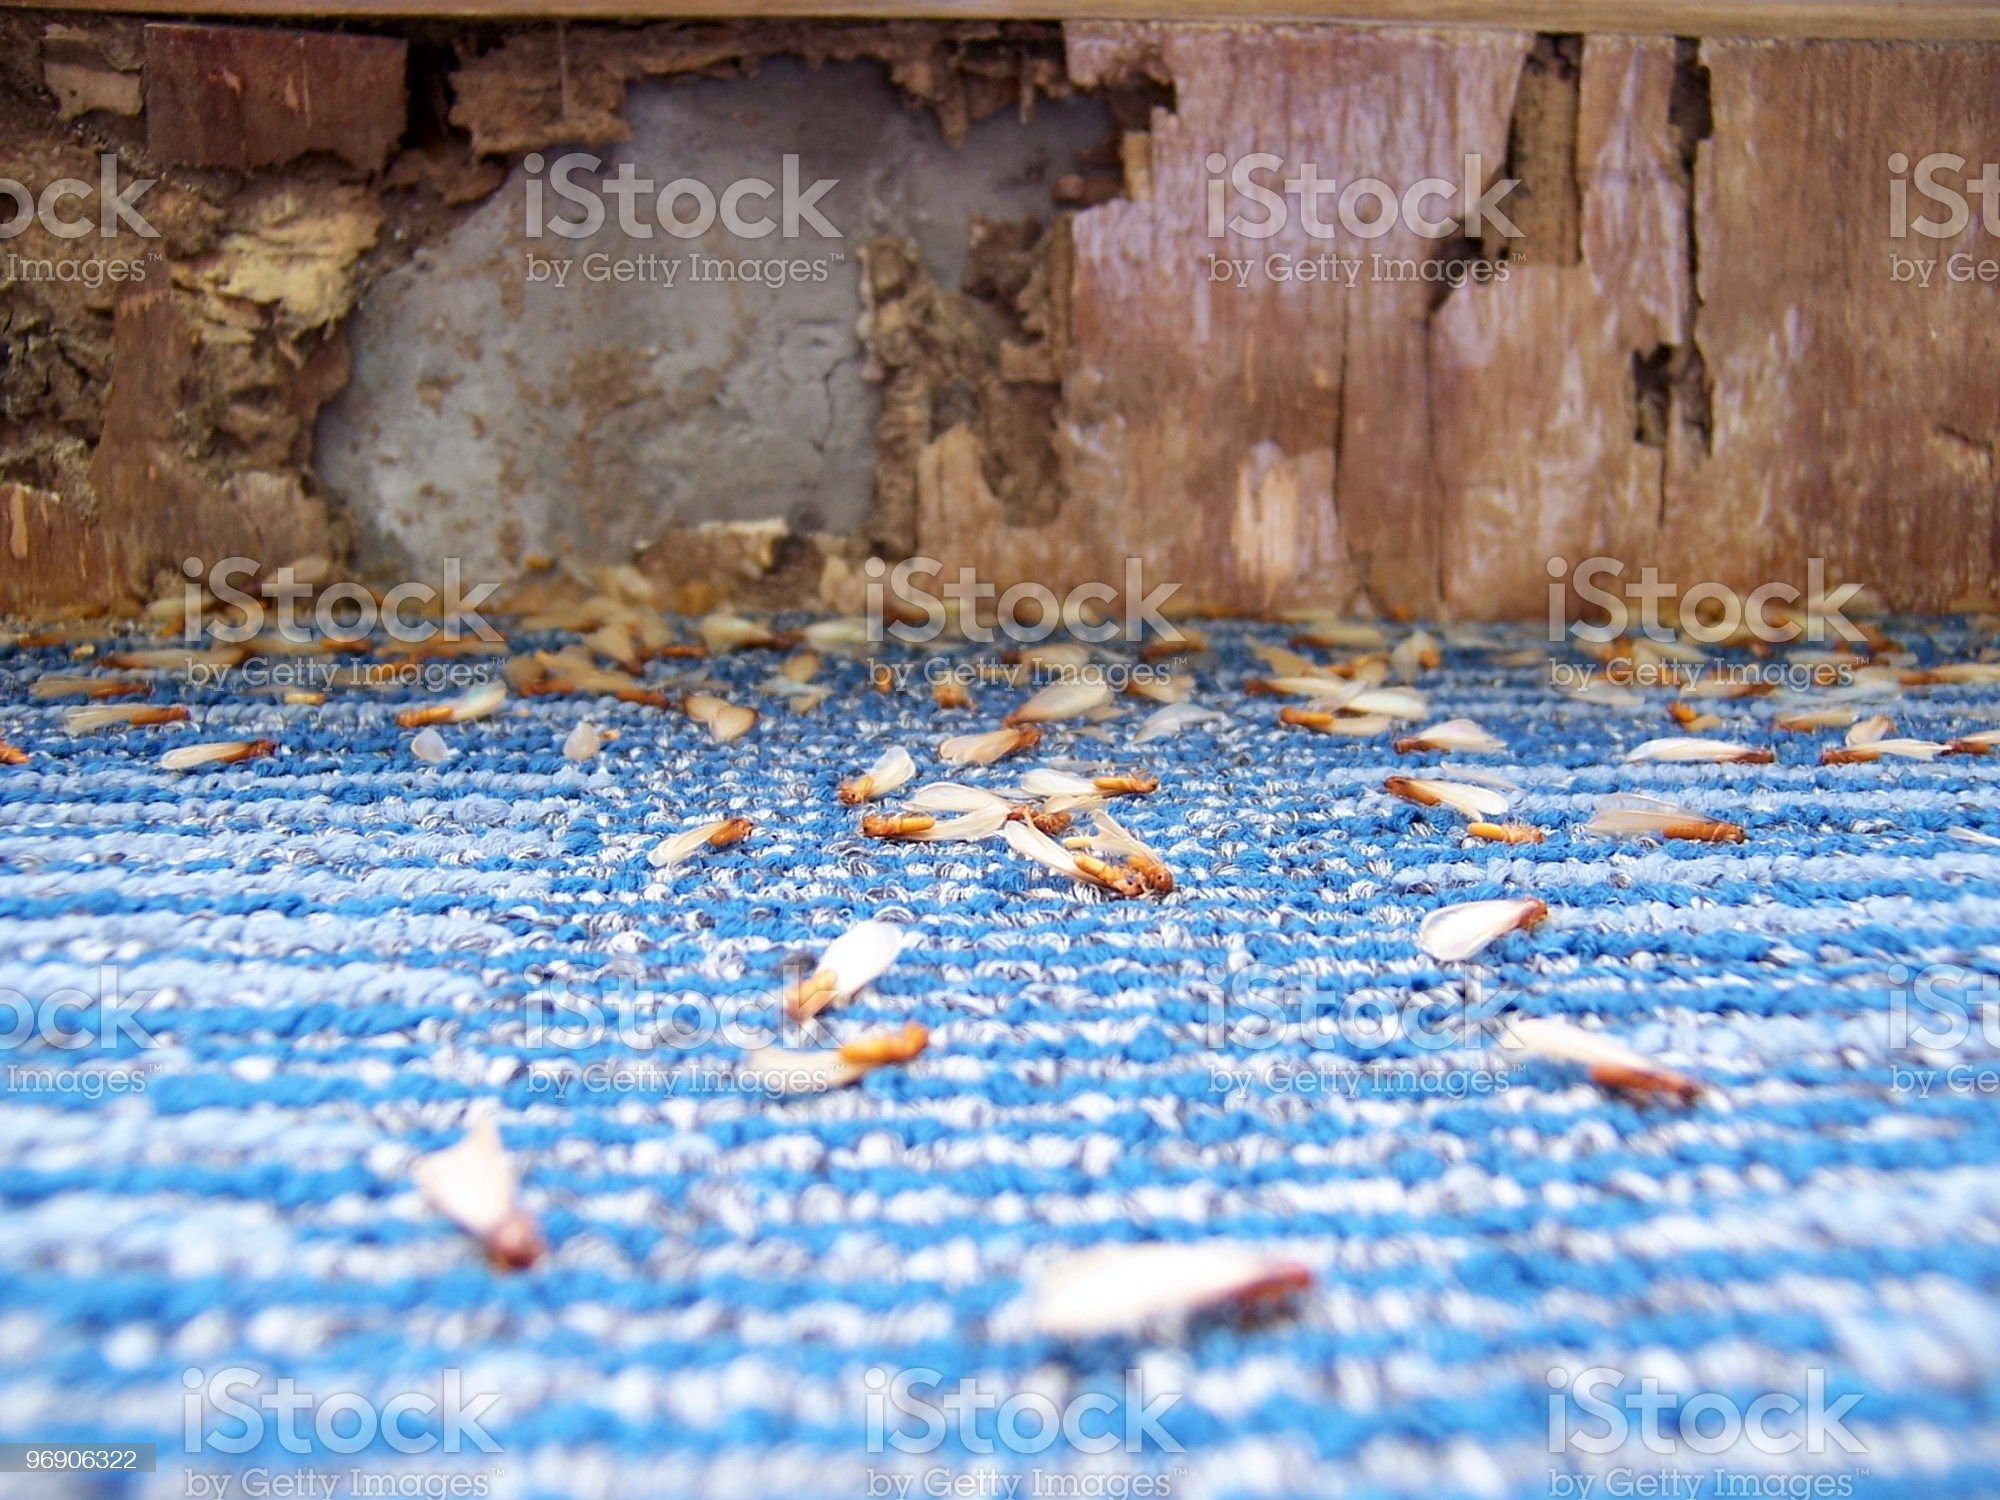 Damage caused by Termites (series) royalty-free stock photo